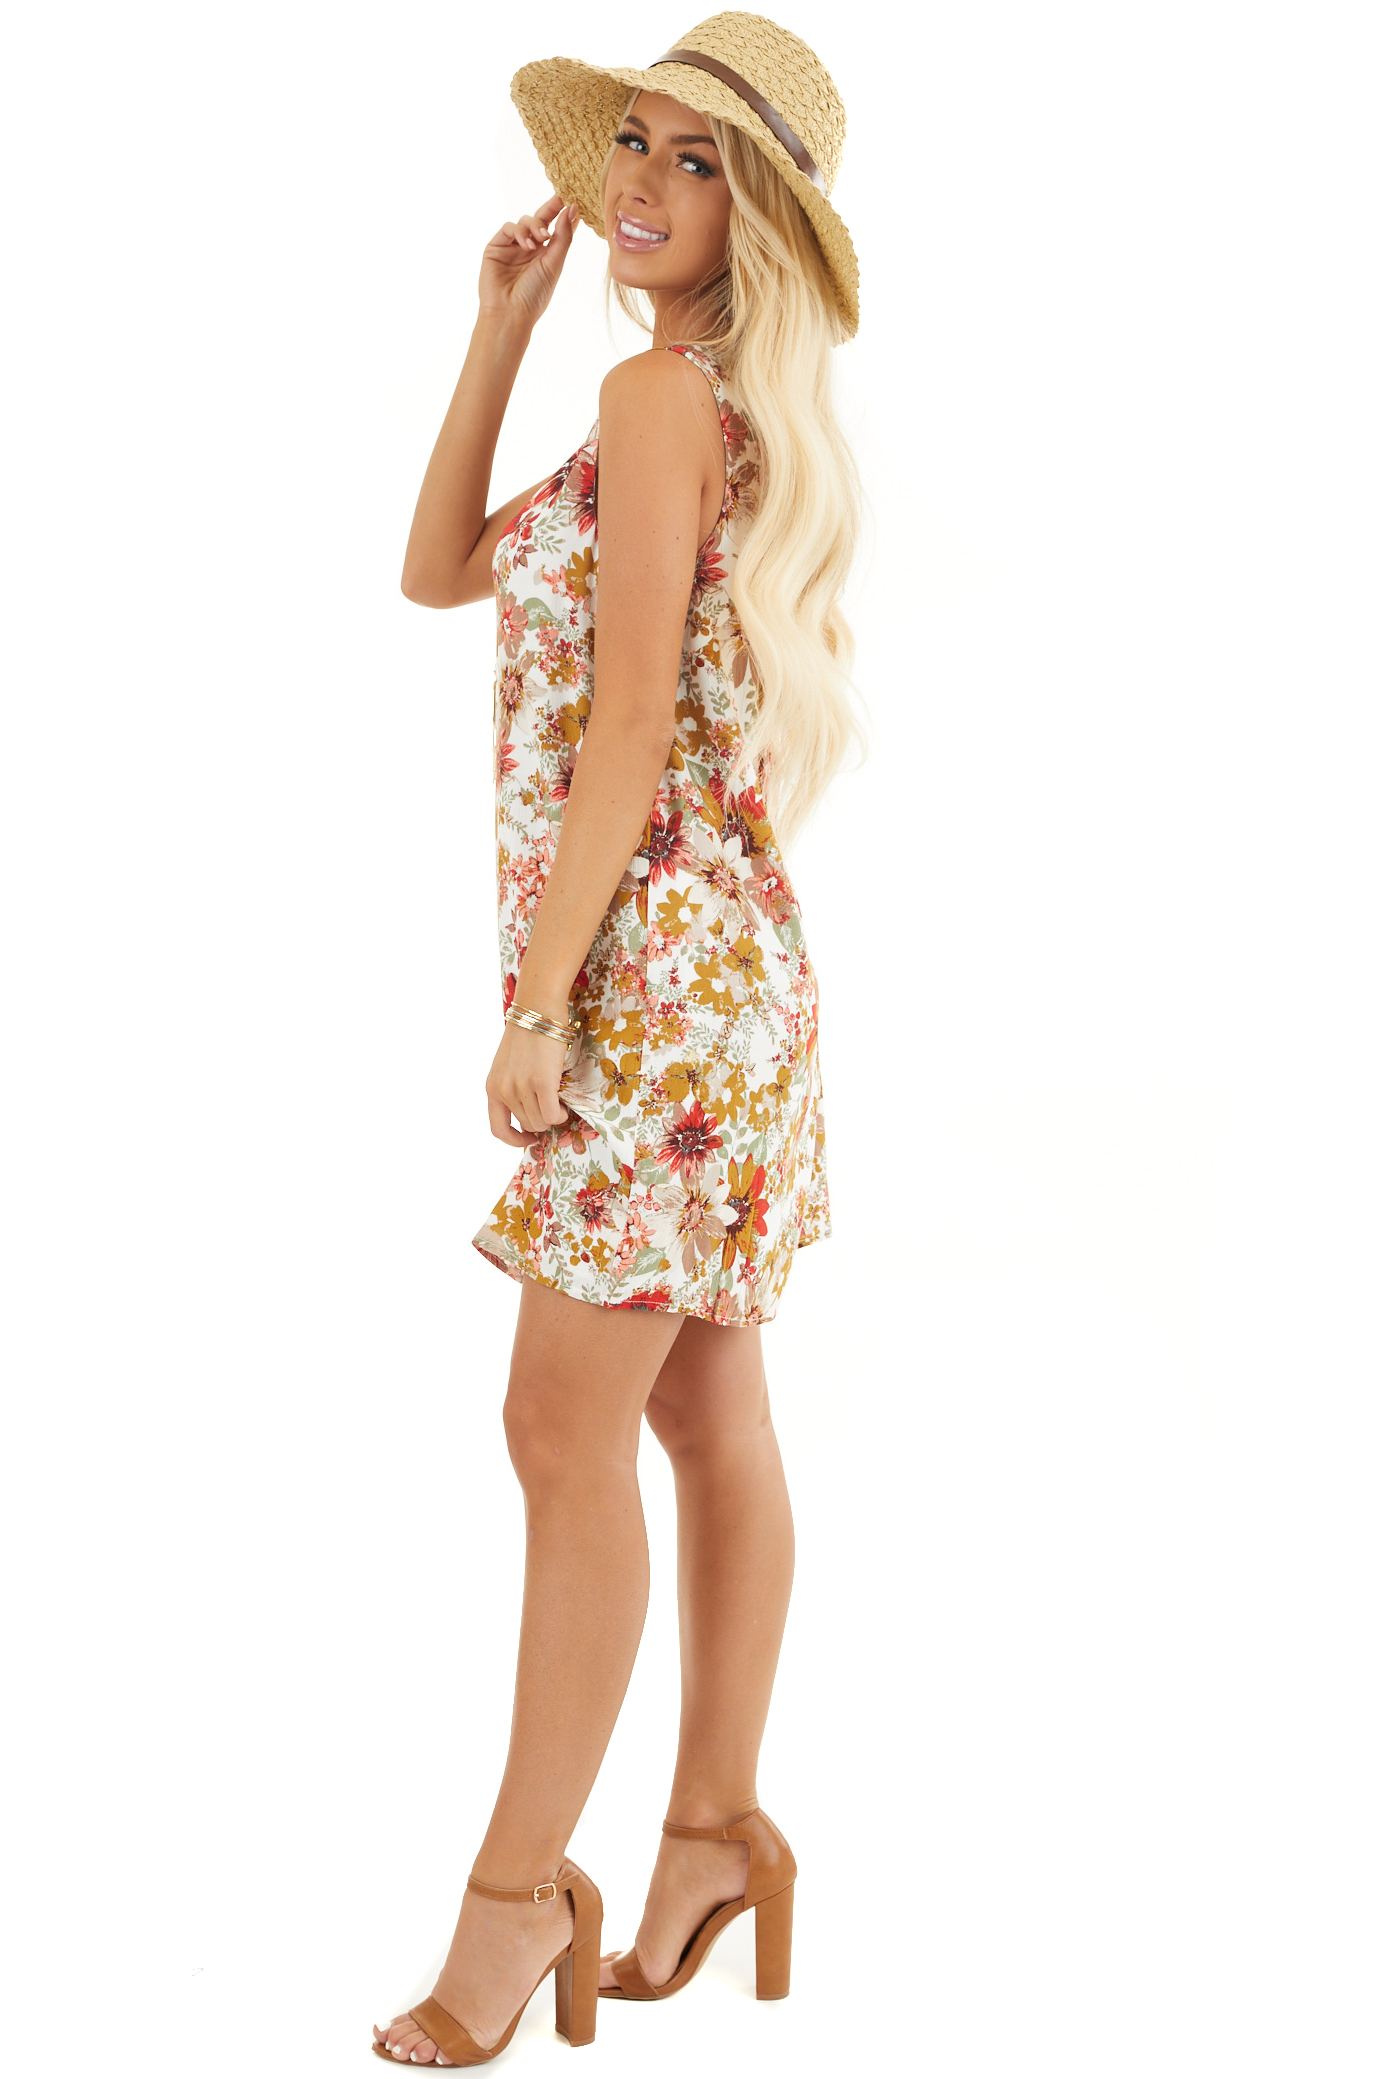 Pearl White Floral Print Shift Mini Dress with Cutout Back side full body